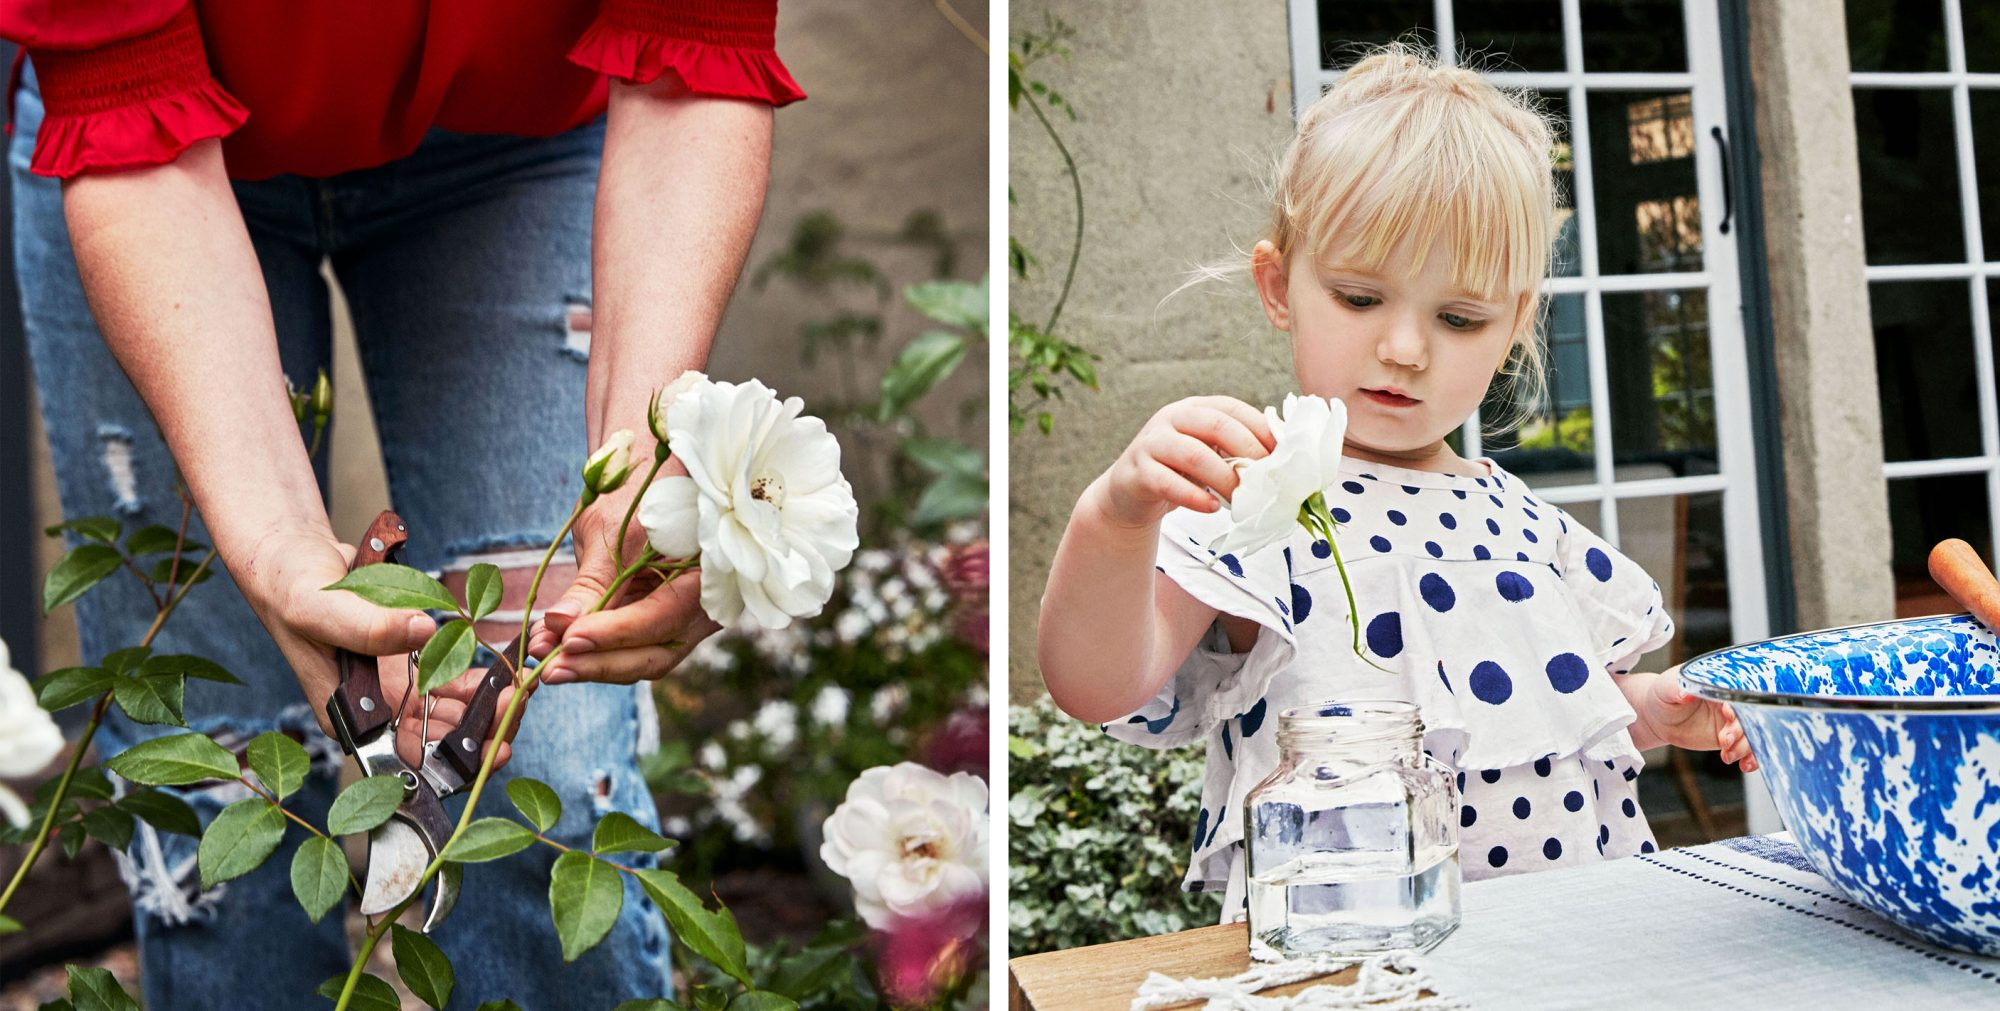 emily henderson and daughter arranging flowers